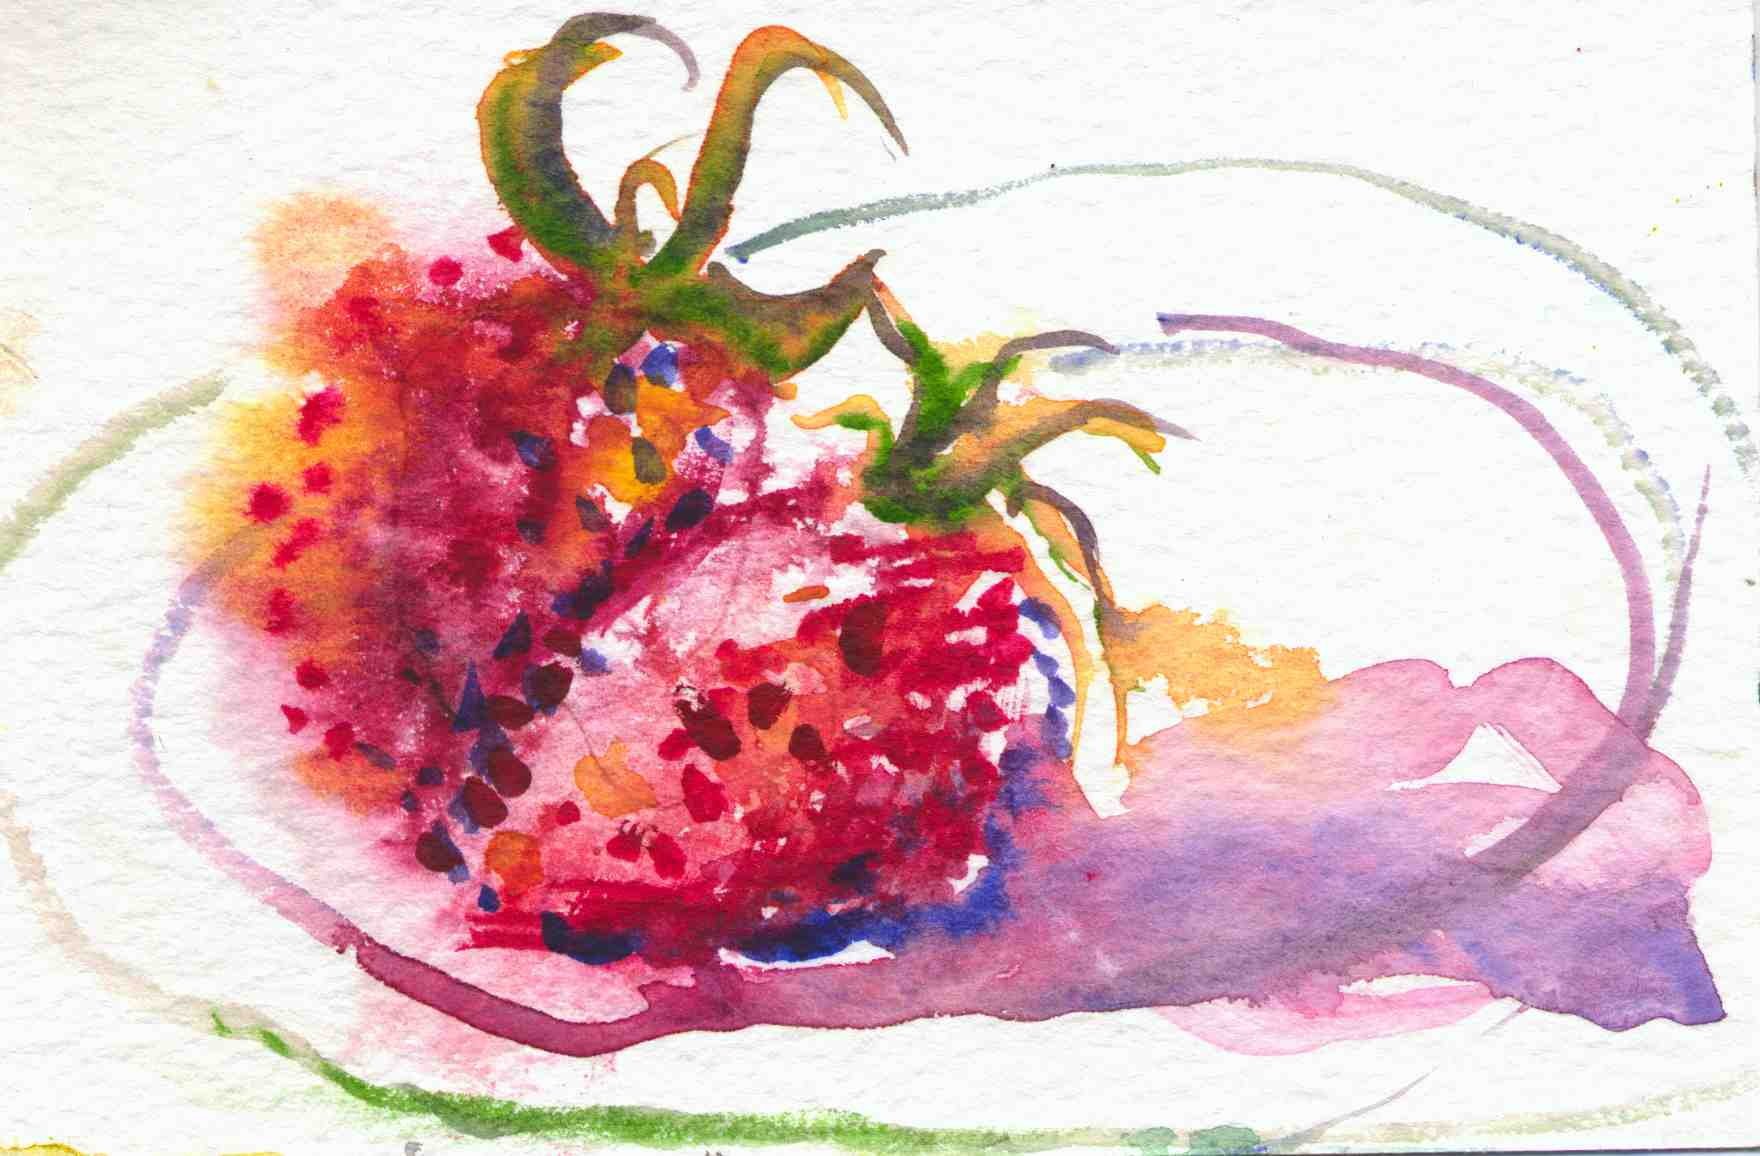 Watercolor Paintings Of Fruit AN EXHIBIT OF PAINTINGS WITH A